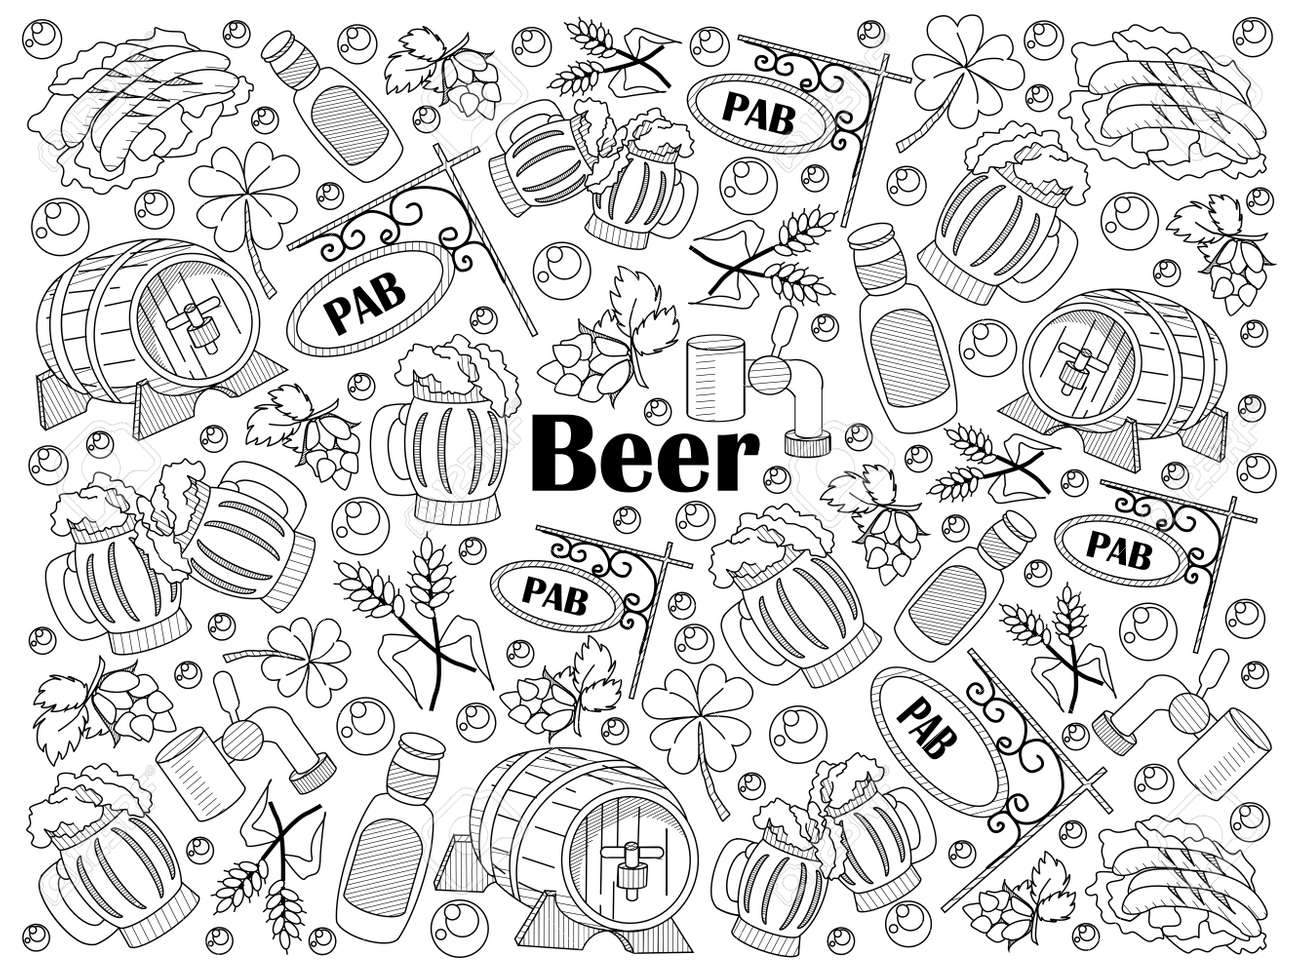 Beer Design Colorless Set Vector Illustration Coloring Book Black And White Line Art Stock